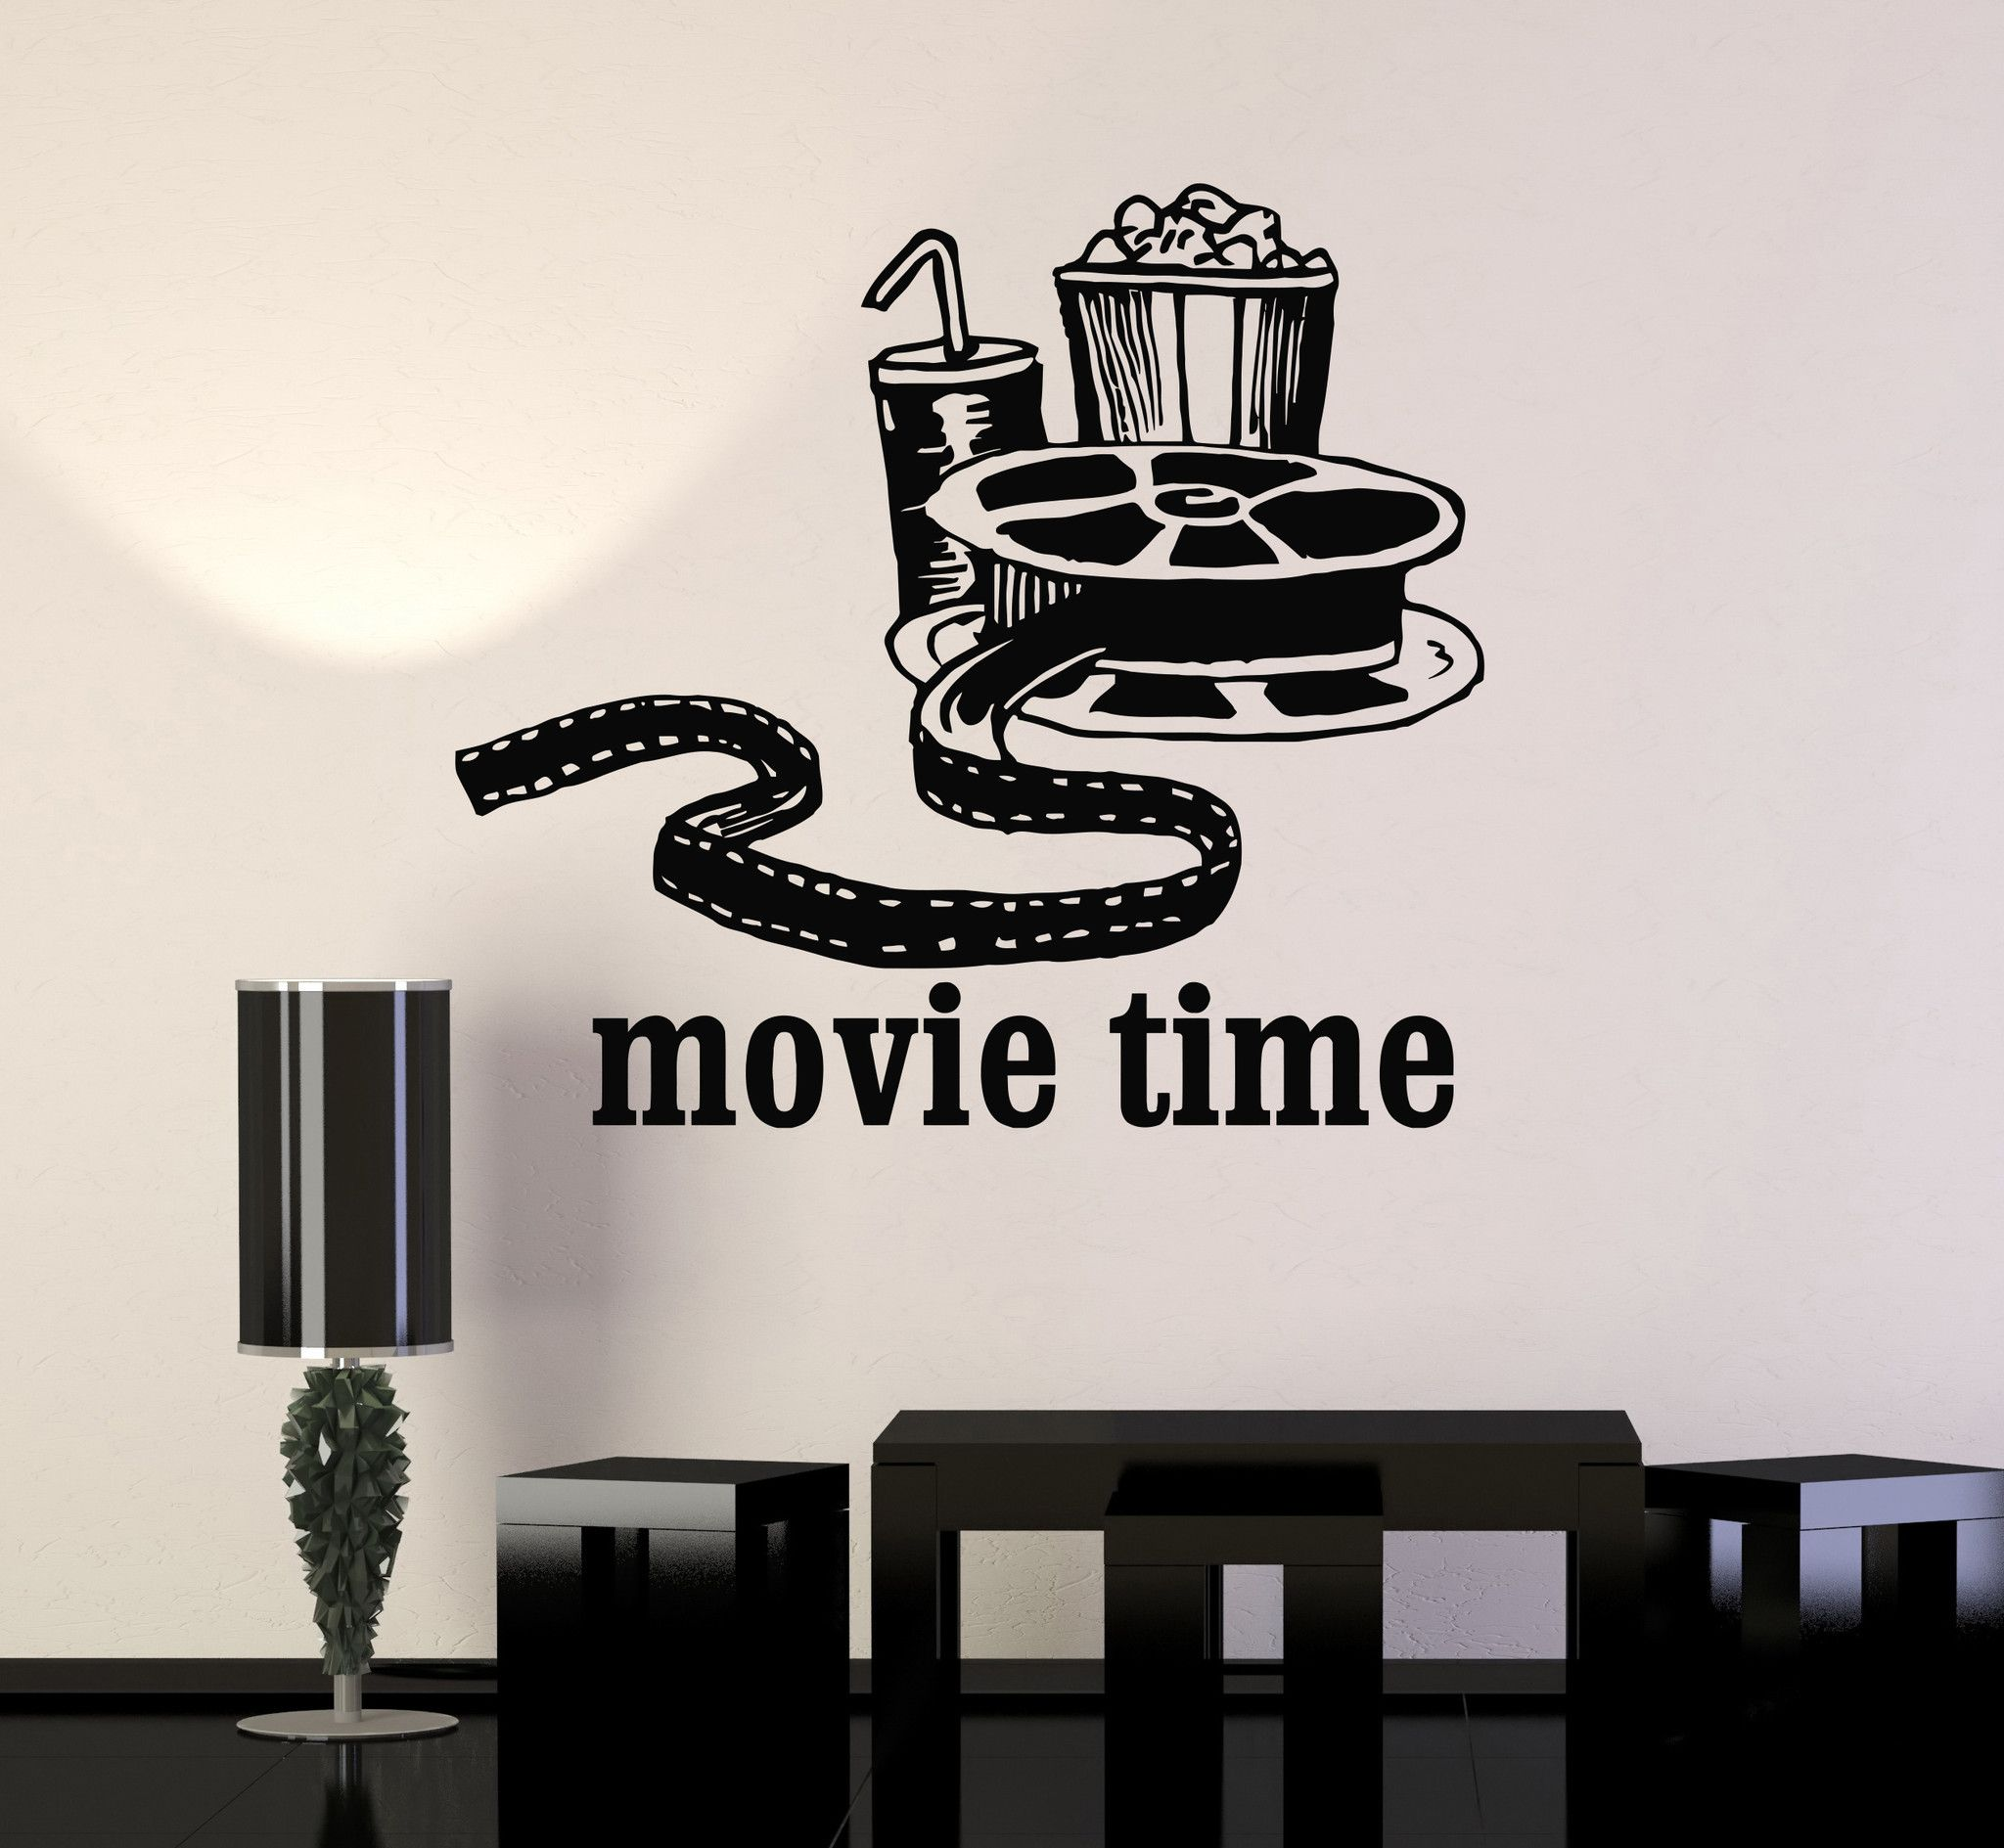 Wall Sconces For Media Room: Vinyl Wall Decal Movies Cinema Film Popcorn Room Decor